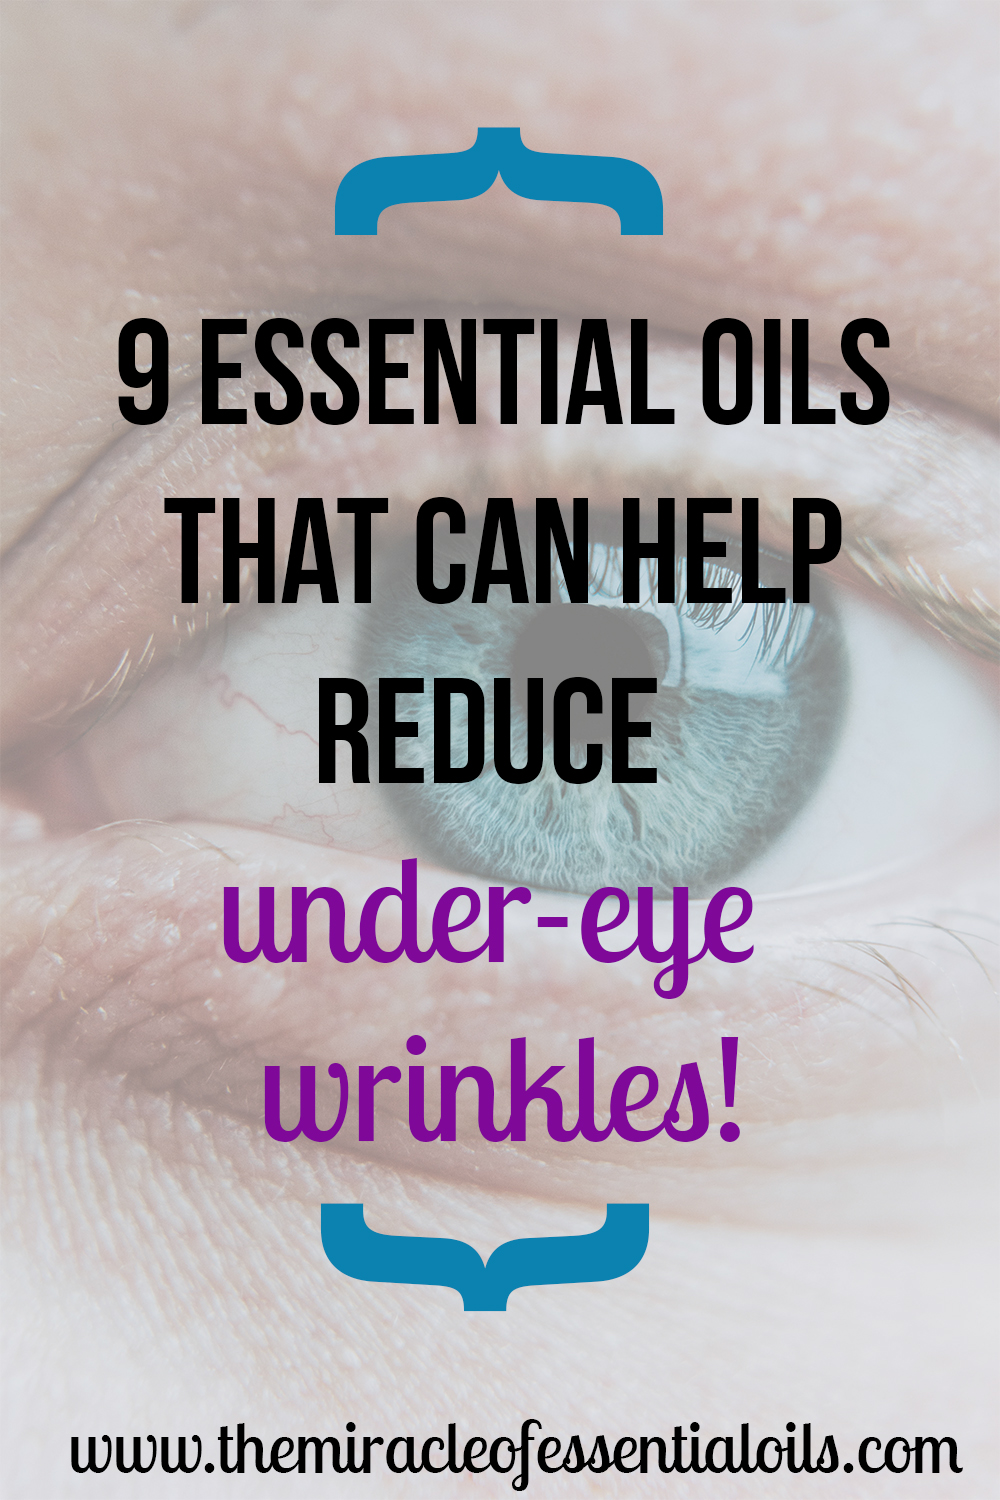 Have you heard of using essential oils for under-eye wrinkles?! Here are the safe and effective ones you can use plus how they actually work.